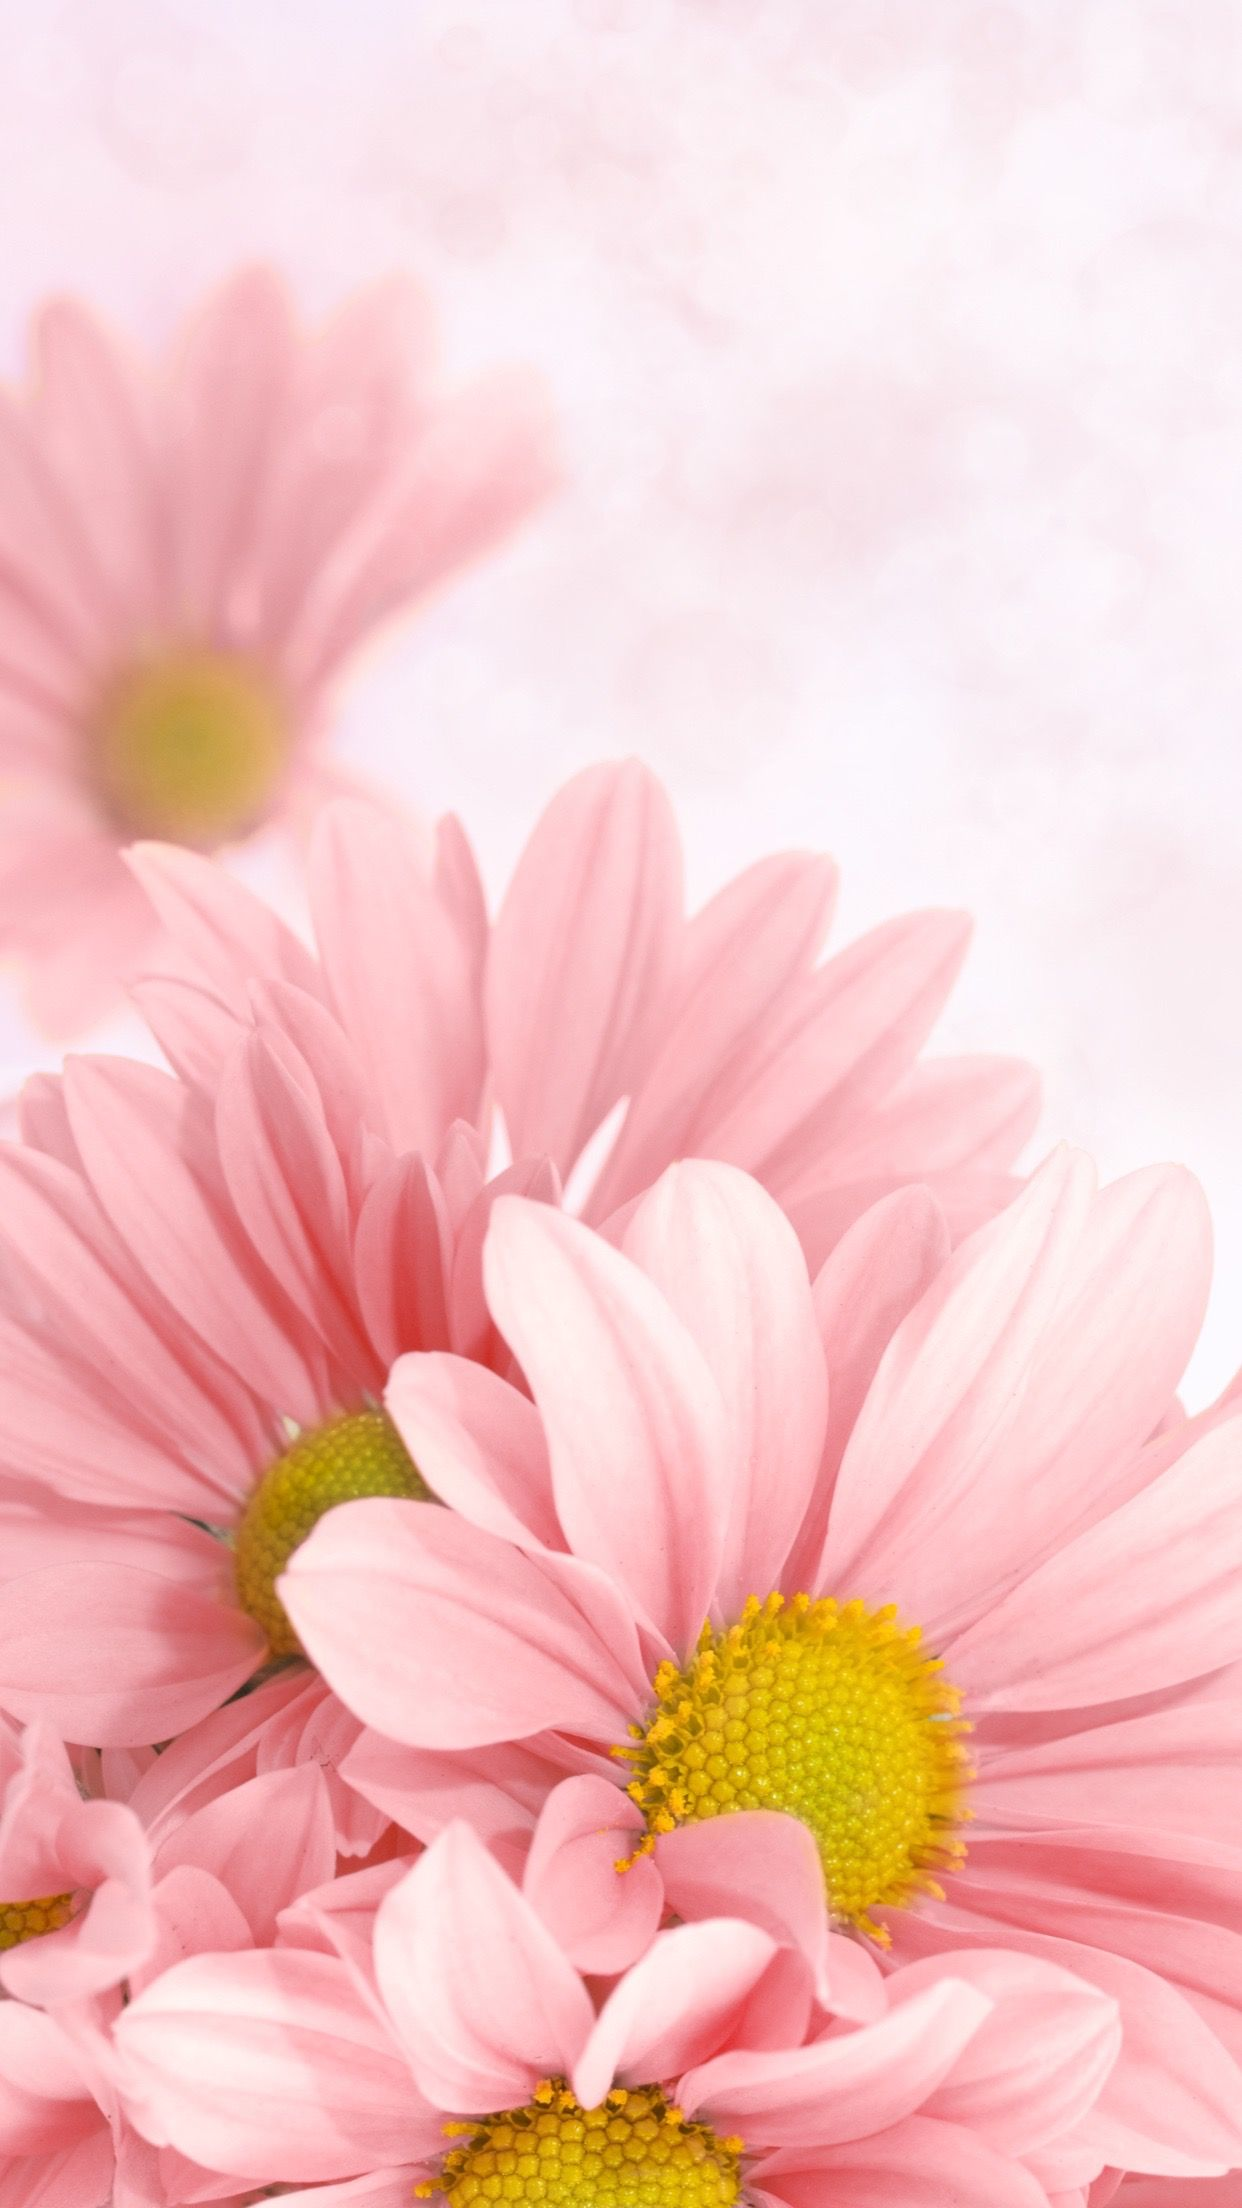 Pink Aesthetic Pink Daisy Wallpaper Flower Phone Flores